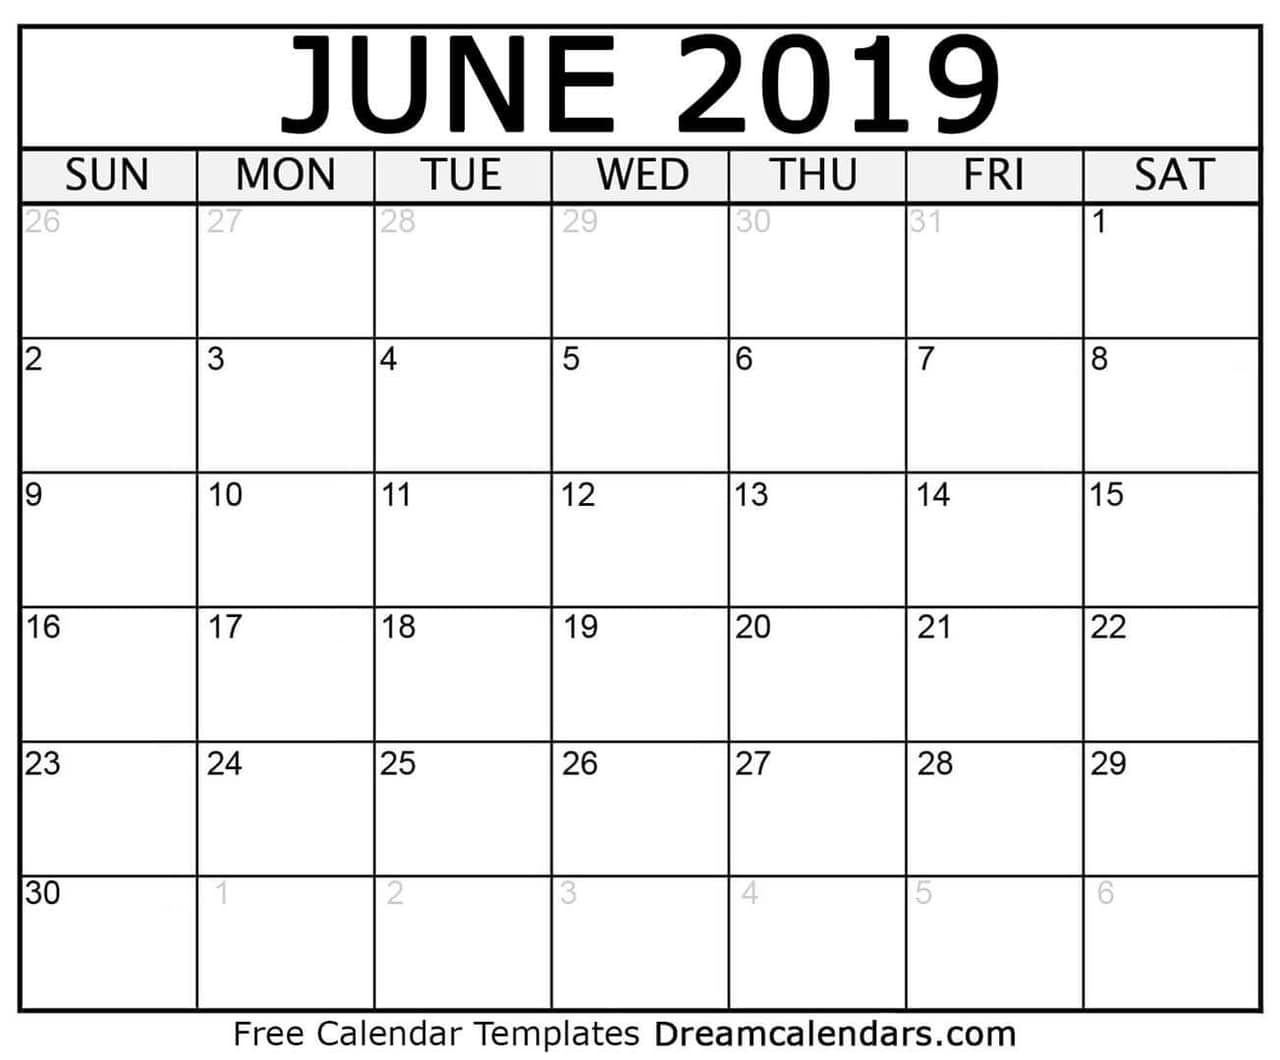 photo regarding Free Printable June Calendar named Printable Blank June 2019 Calendar upon We Center It